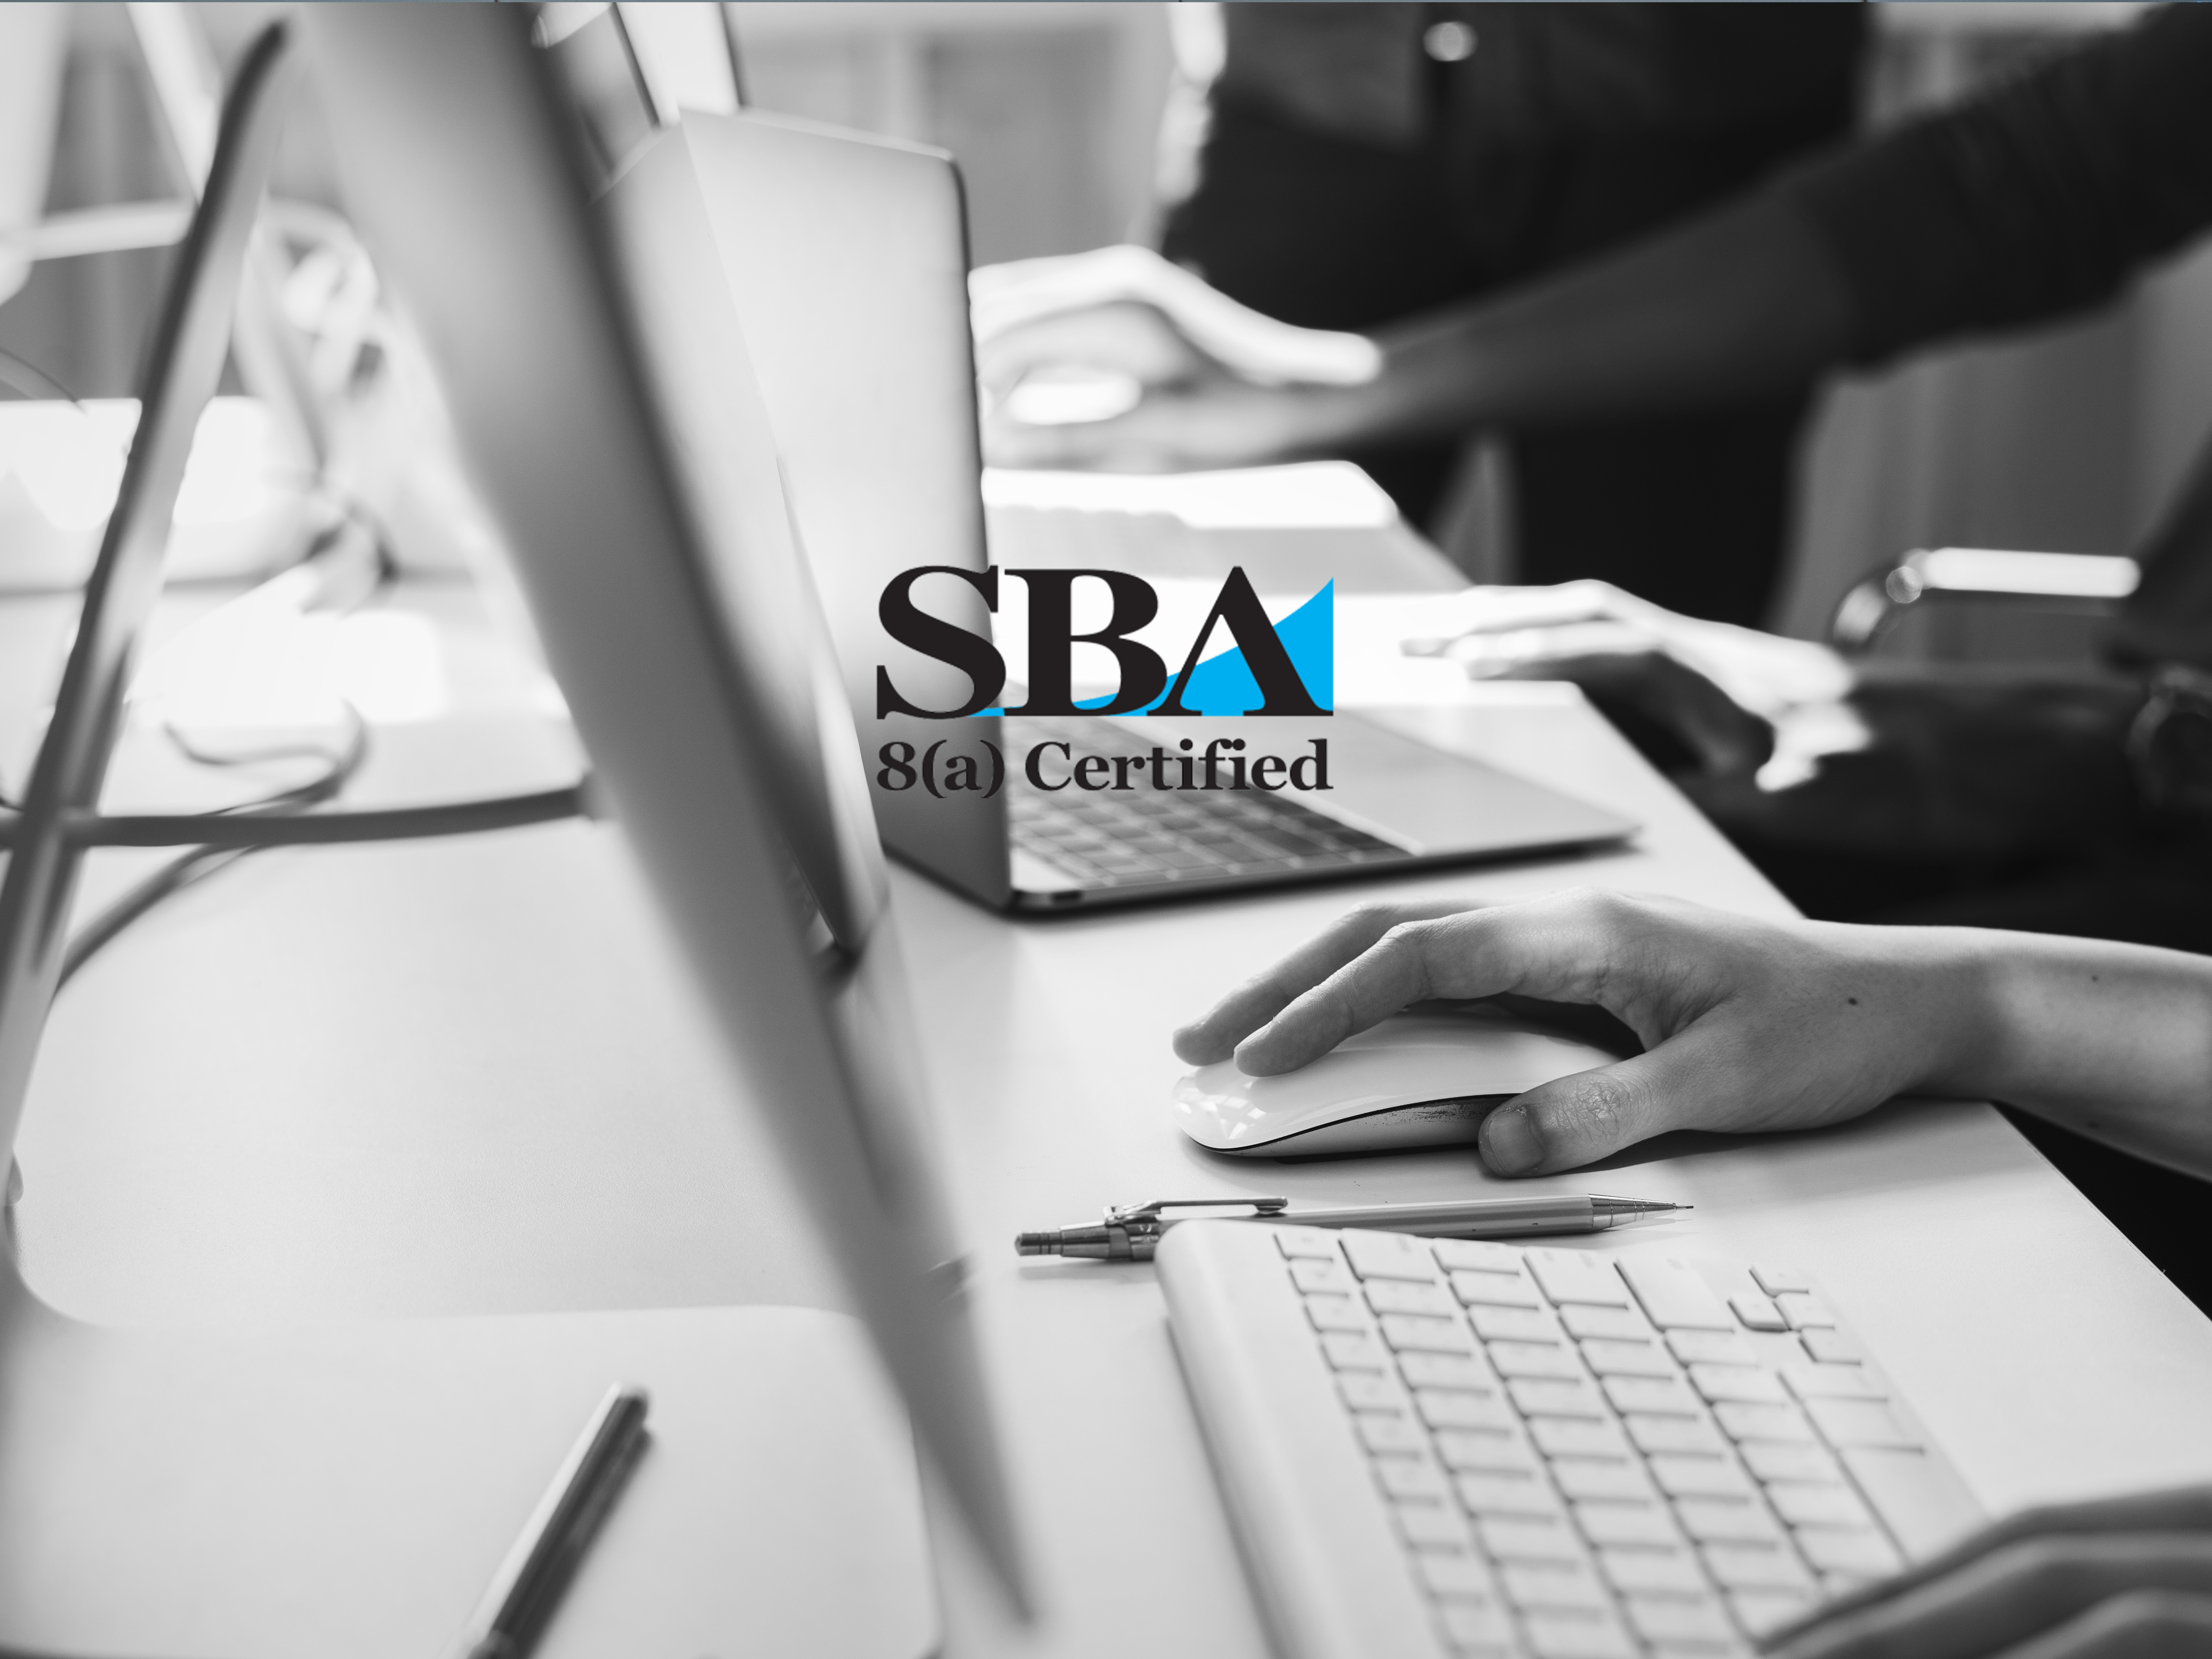 Cynergy Professional Systems Announces SBA 8(a) Certification